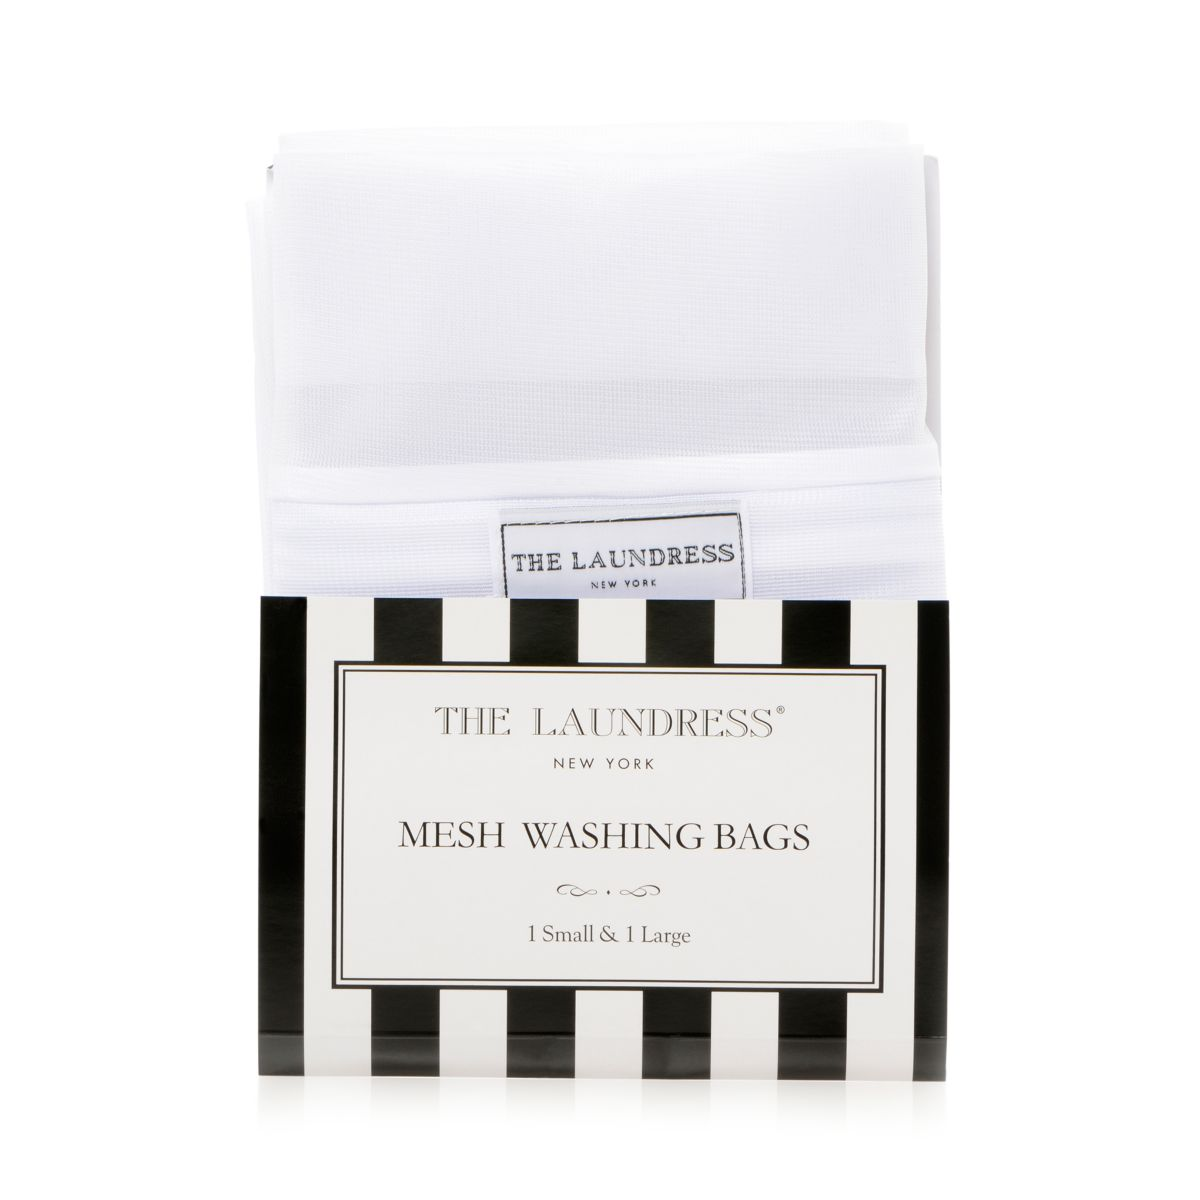 Mesh Washing Bag Bundle by The Laundress